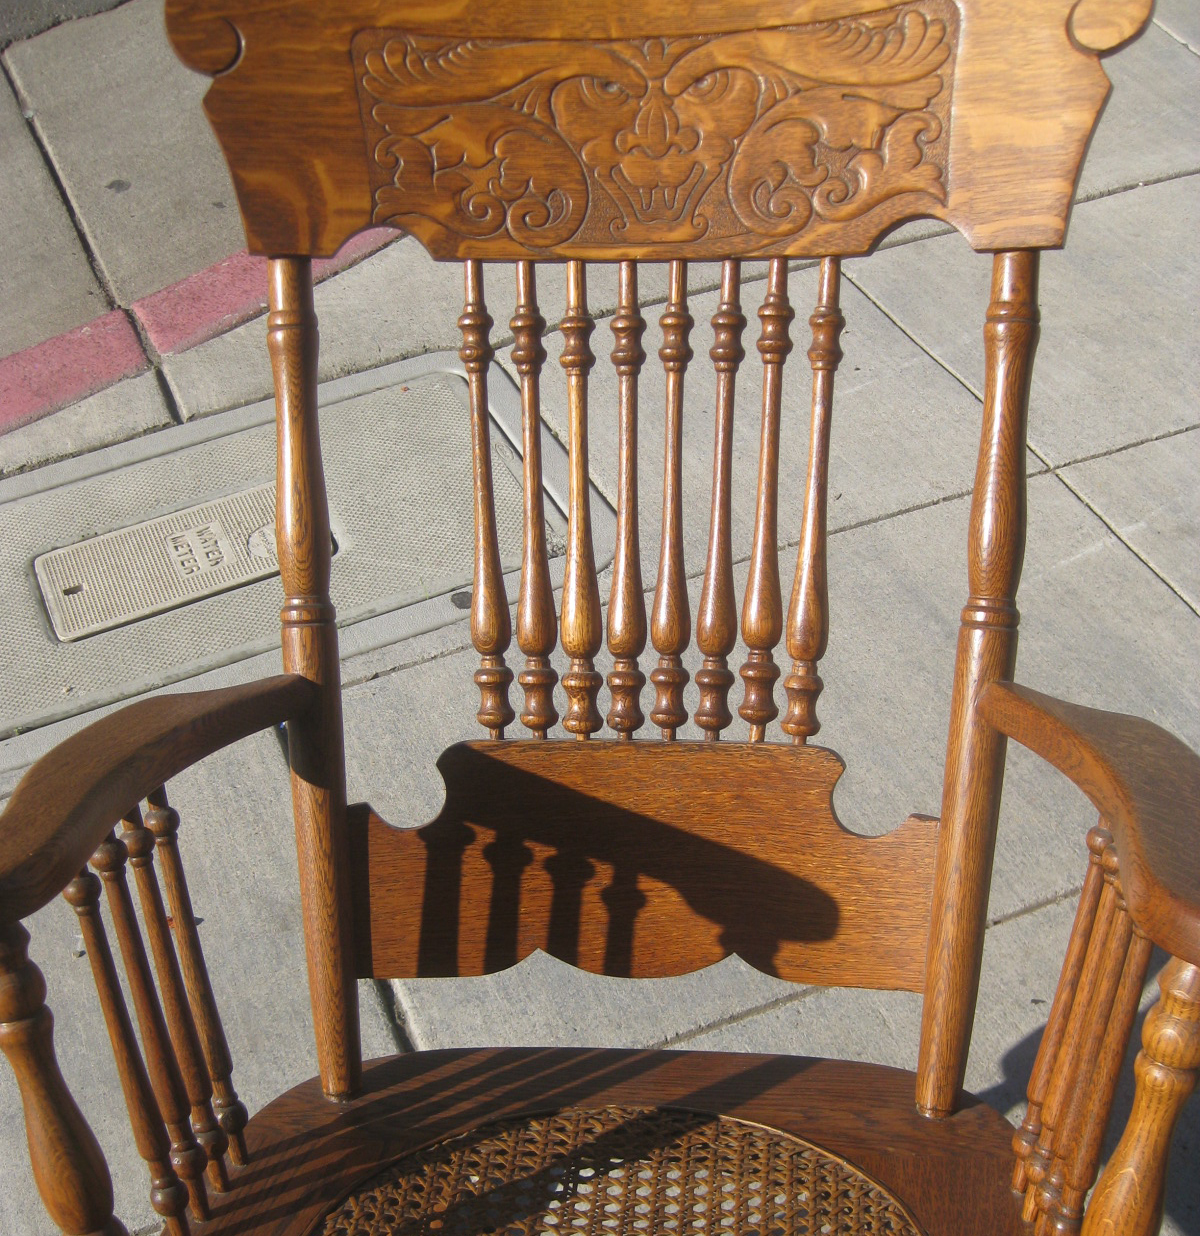 Rocking Chair Antique Styles Folding Seat Covers Uhuru Furniture And Collectibles Sold